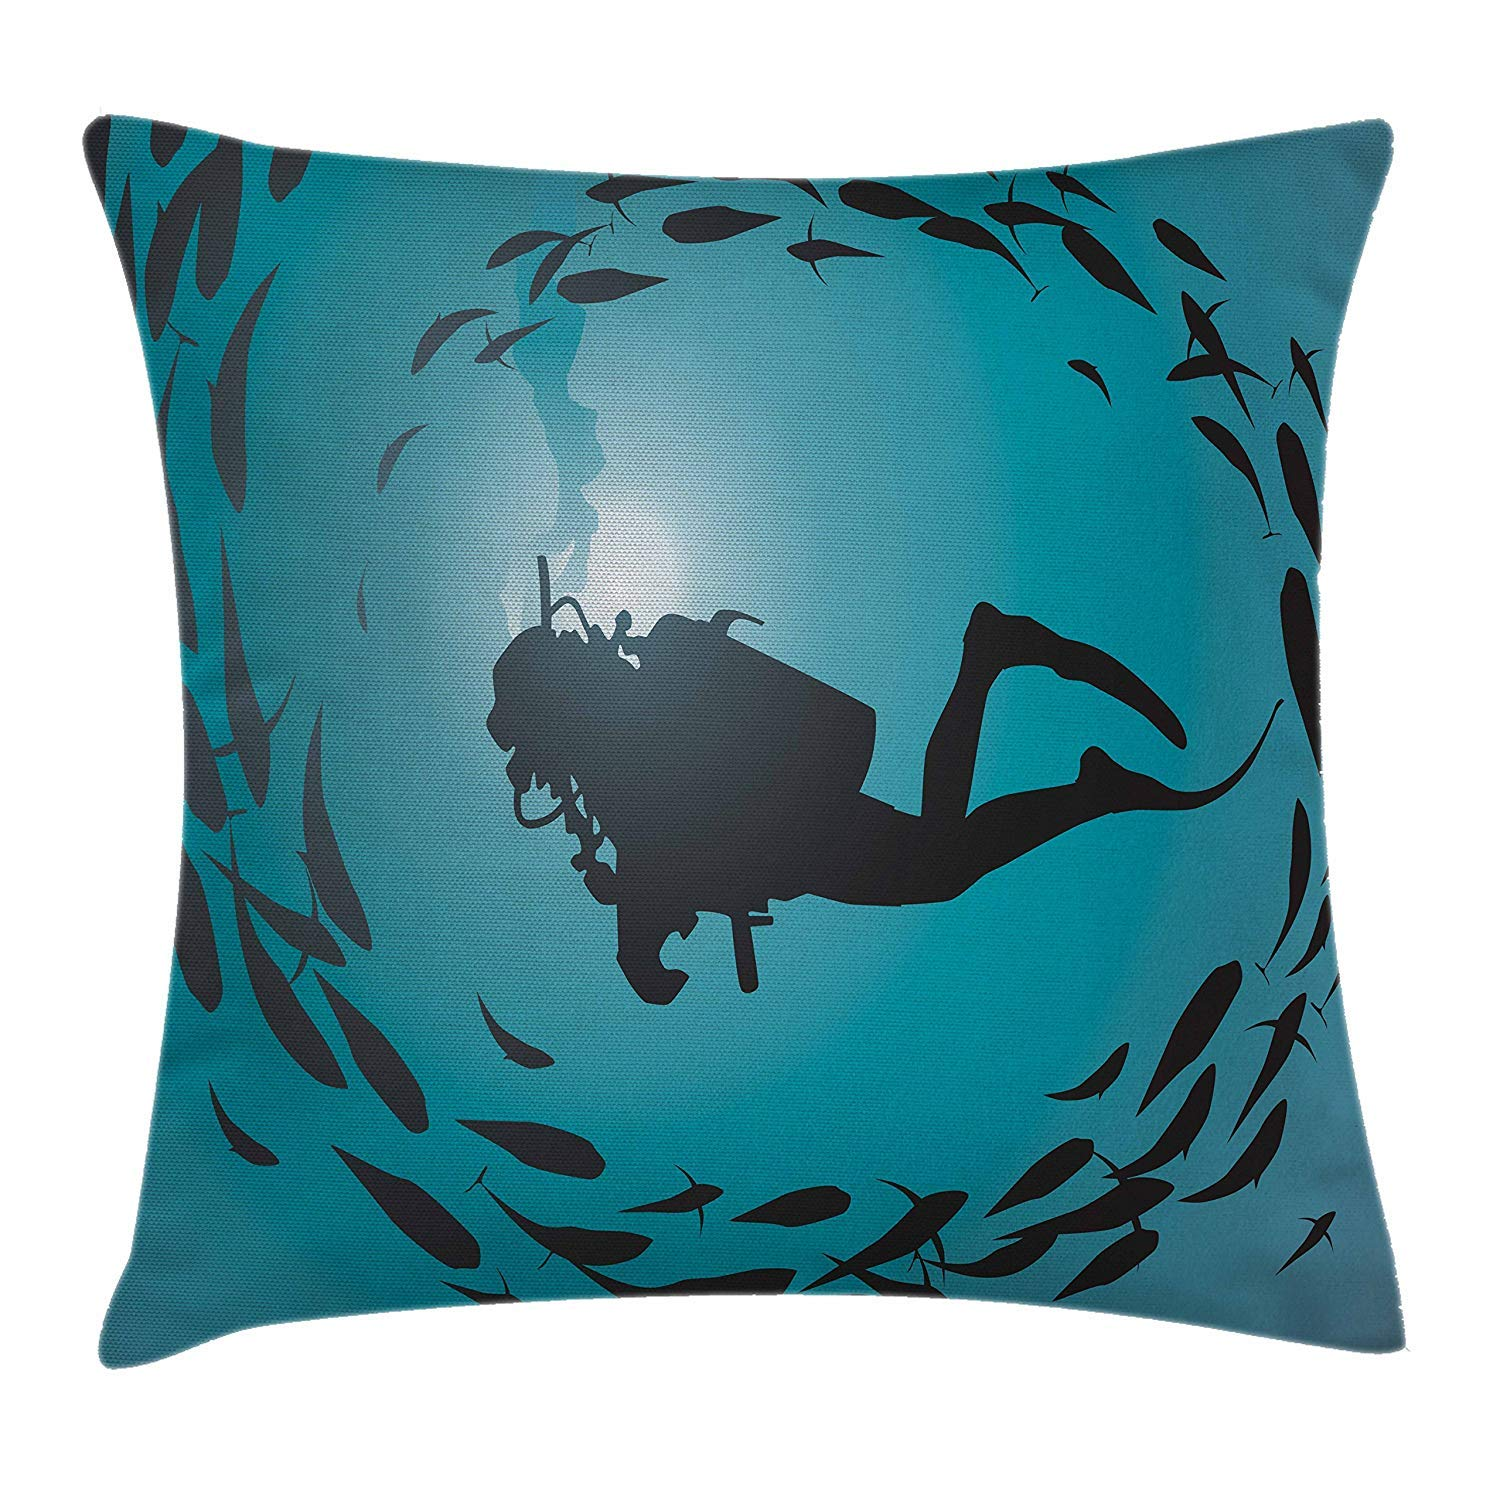 Decorative Square Accent Pillow Case 18 X 18 inches Diver Surrounded with Jamb of Fishes Scuba Snorkel Aqualung Water Sports Under The Sea Throw Pillow Cushion Cover Dark Blue Aqua